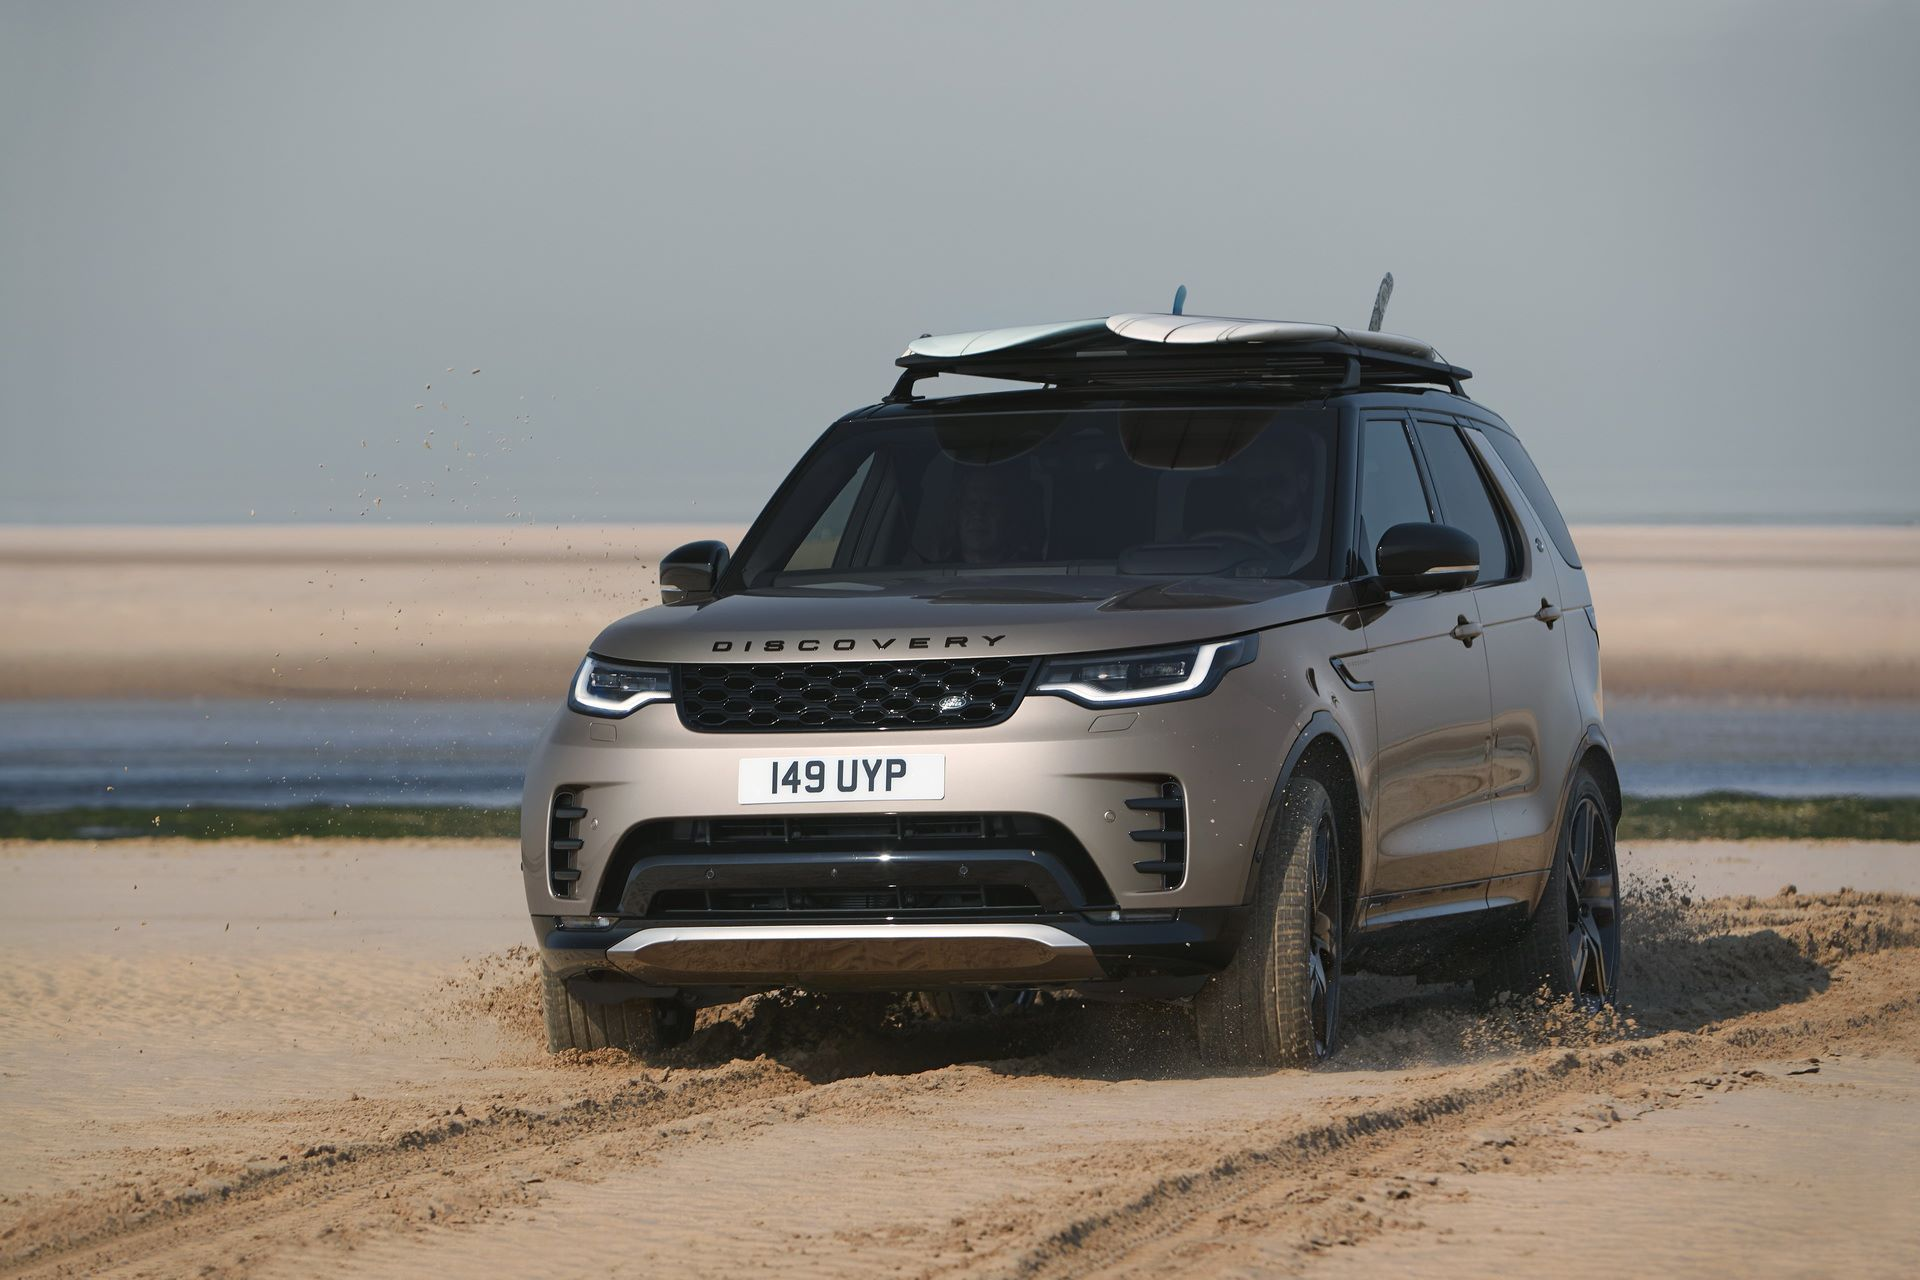 2021-Land-Rover-Discovery-37-1